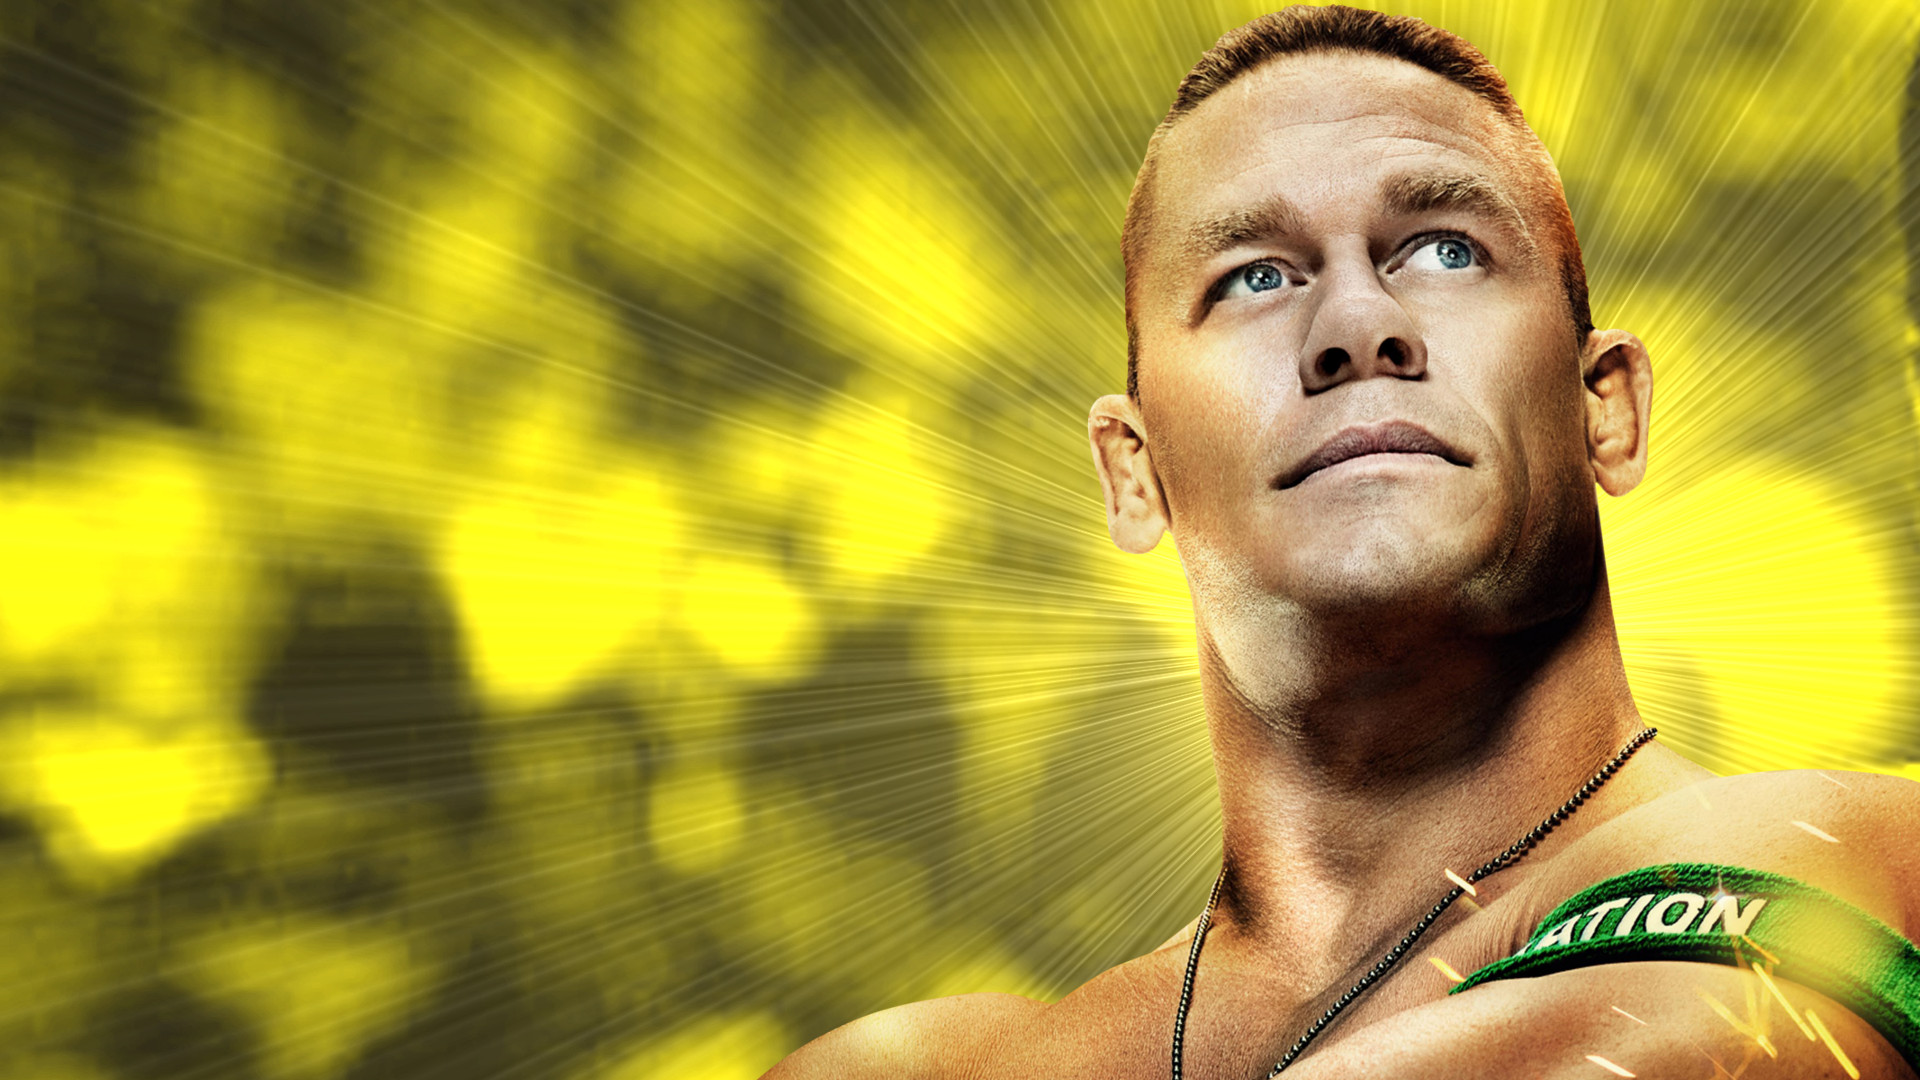 John Cena HD Wallpapers 1920x1080